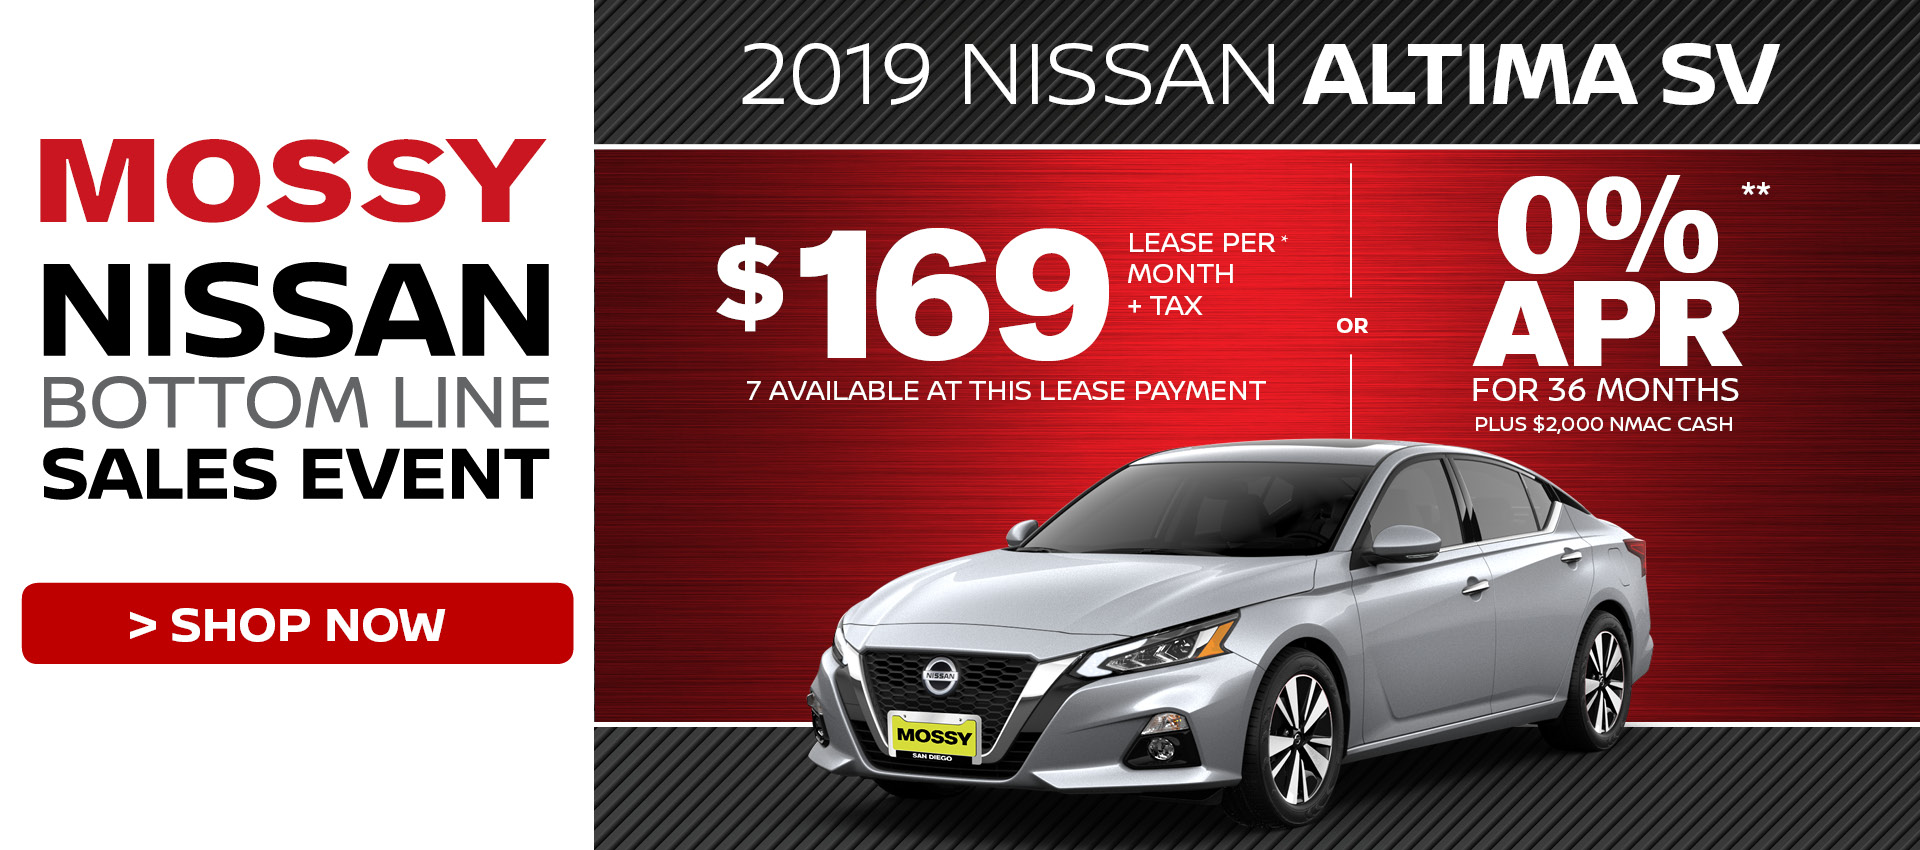 Mossy Nissan - Nissan Altima SV $169 Lease HP